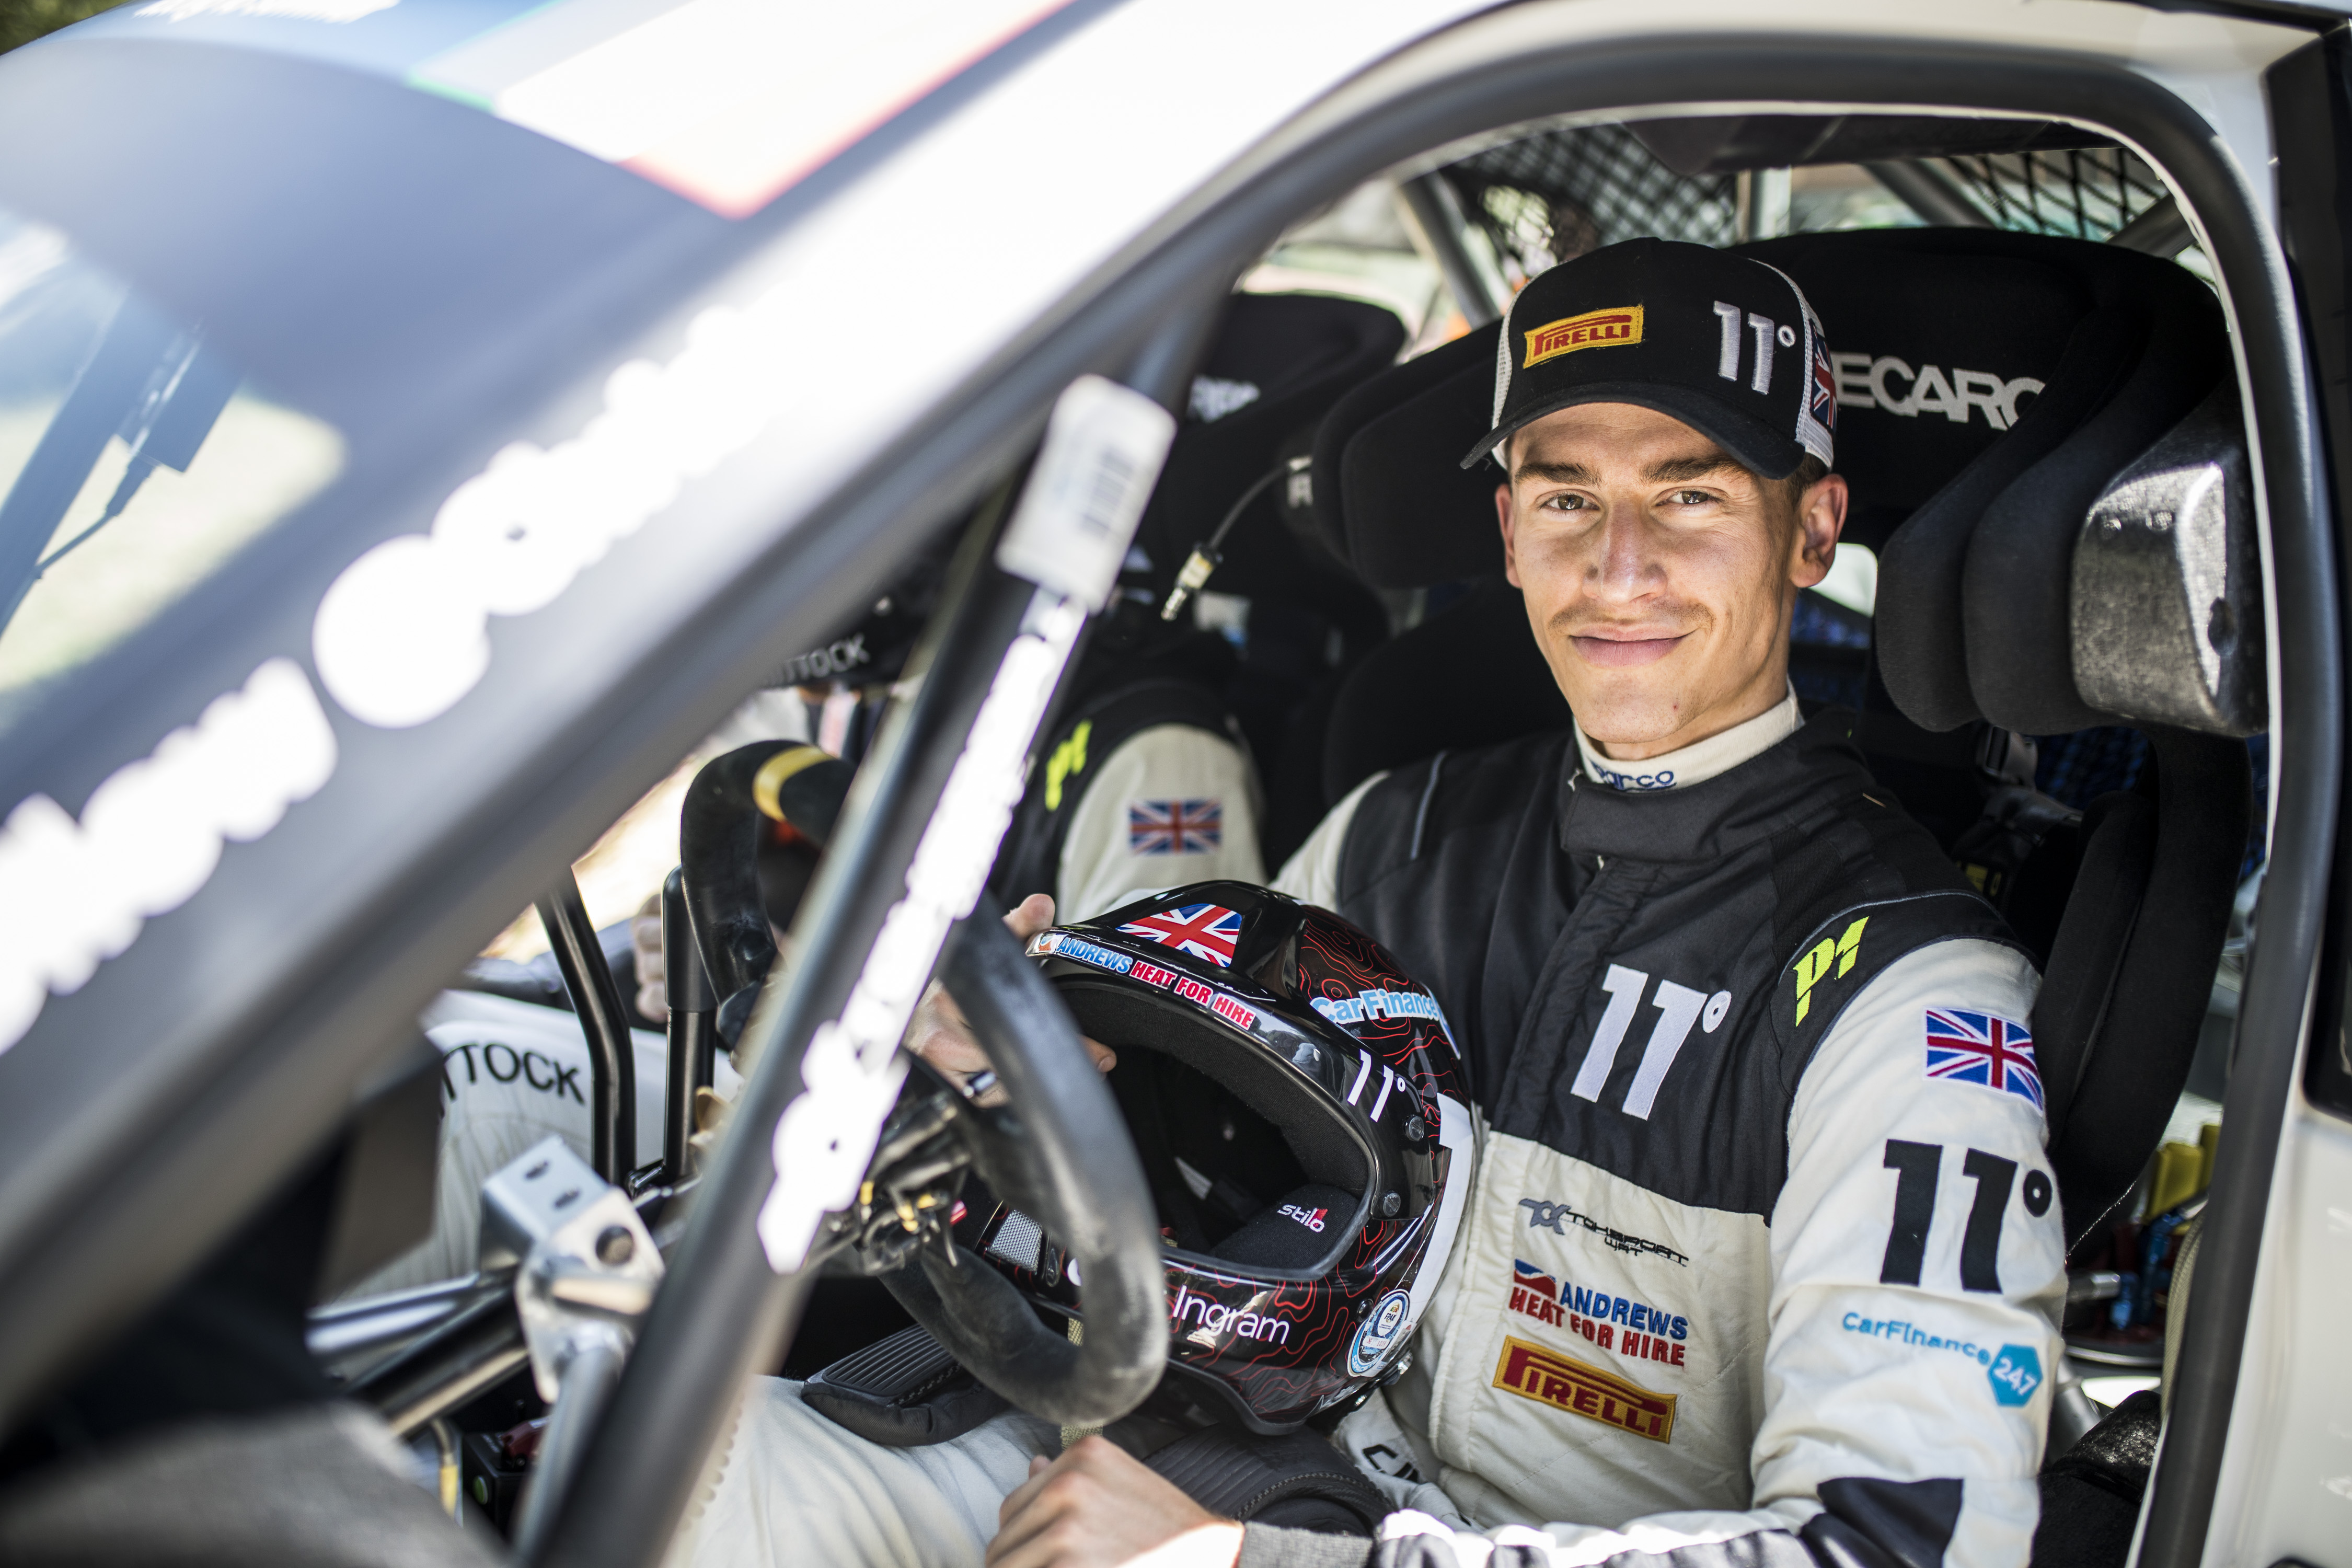 Ingram aims for big Czech prize